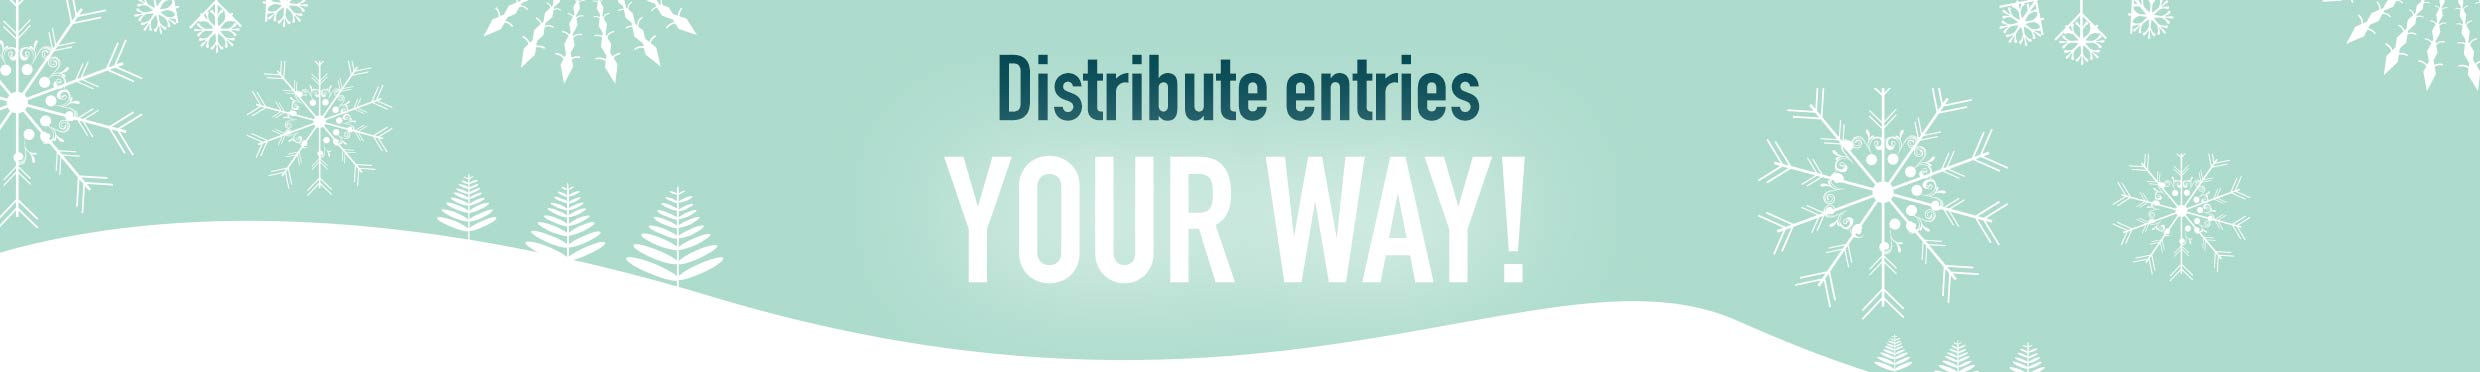 Distribute entries your way!